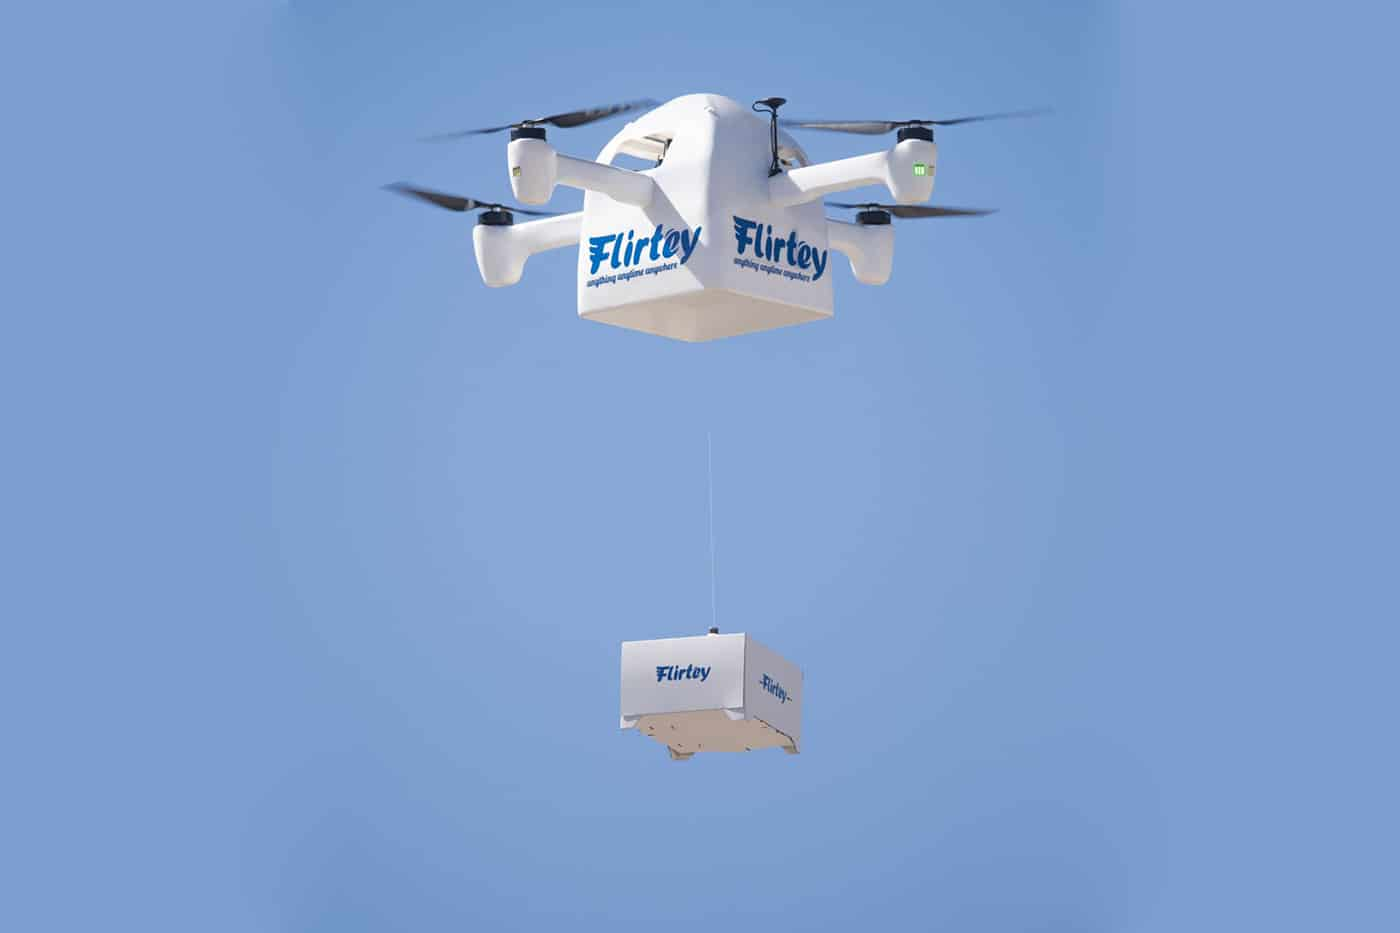 Flirtey Eagle delivery drone can deliver packages in less than 10 minutes